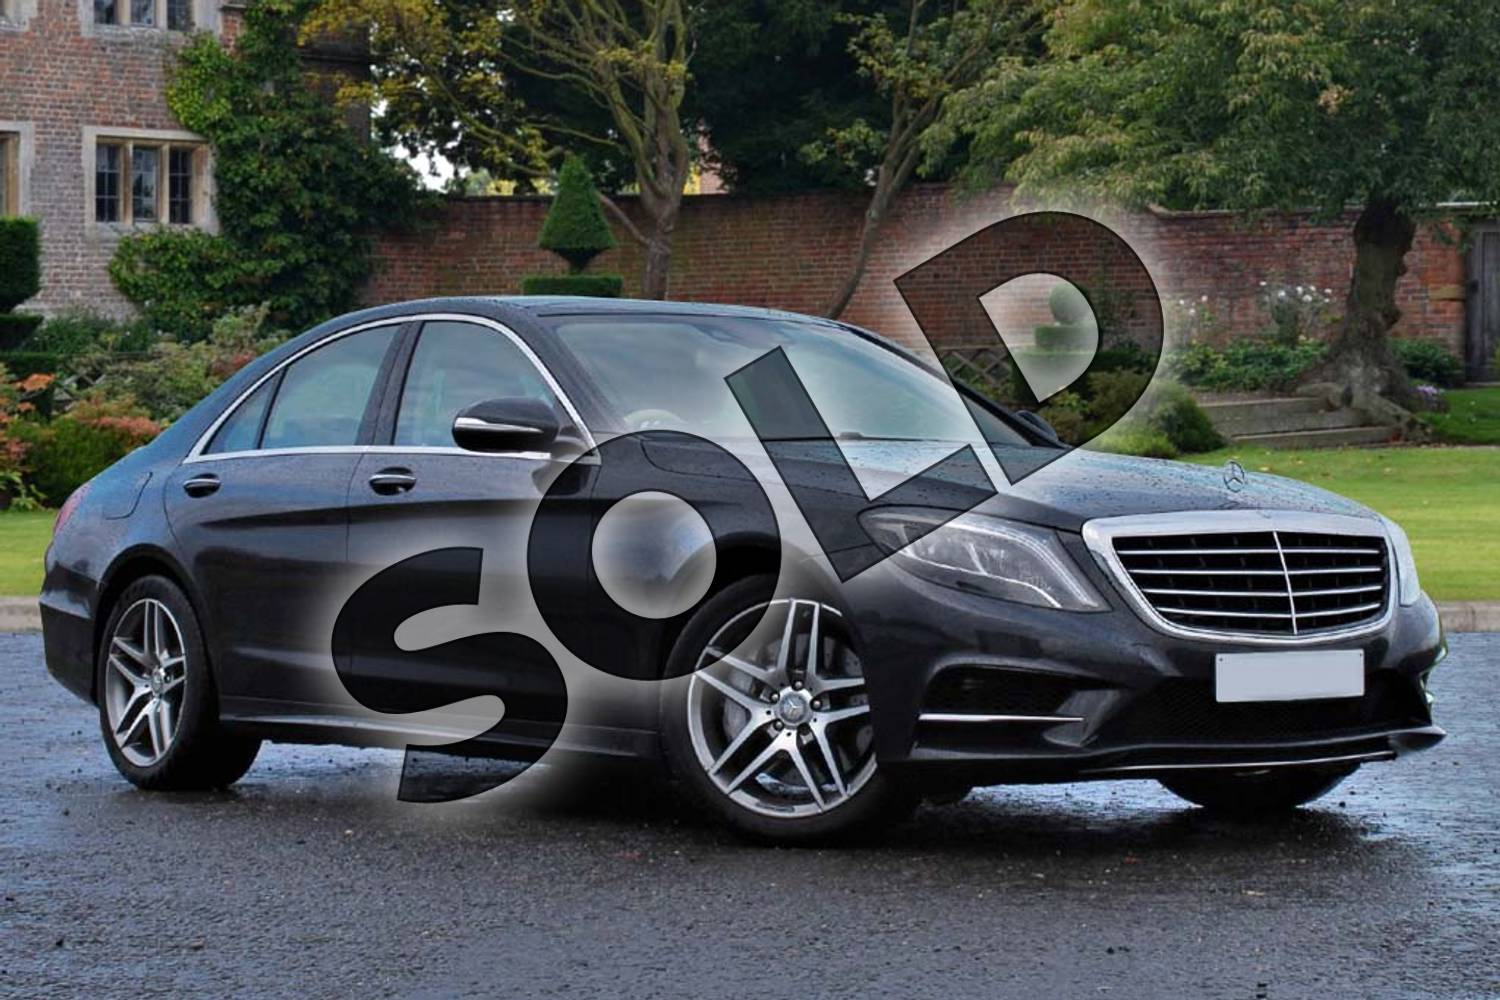 2015 Mercedes-Benz S Class Diesel Saloon S350 BlueTEC AMG Line 4dr Auto in Anthracite blue metallic at Mercedes-Benz of Lincoln